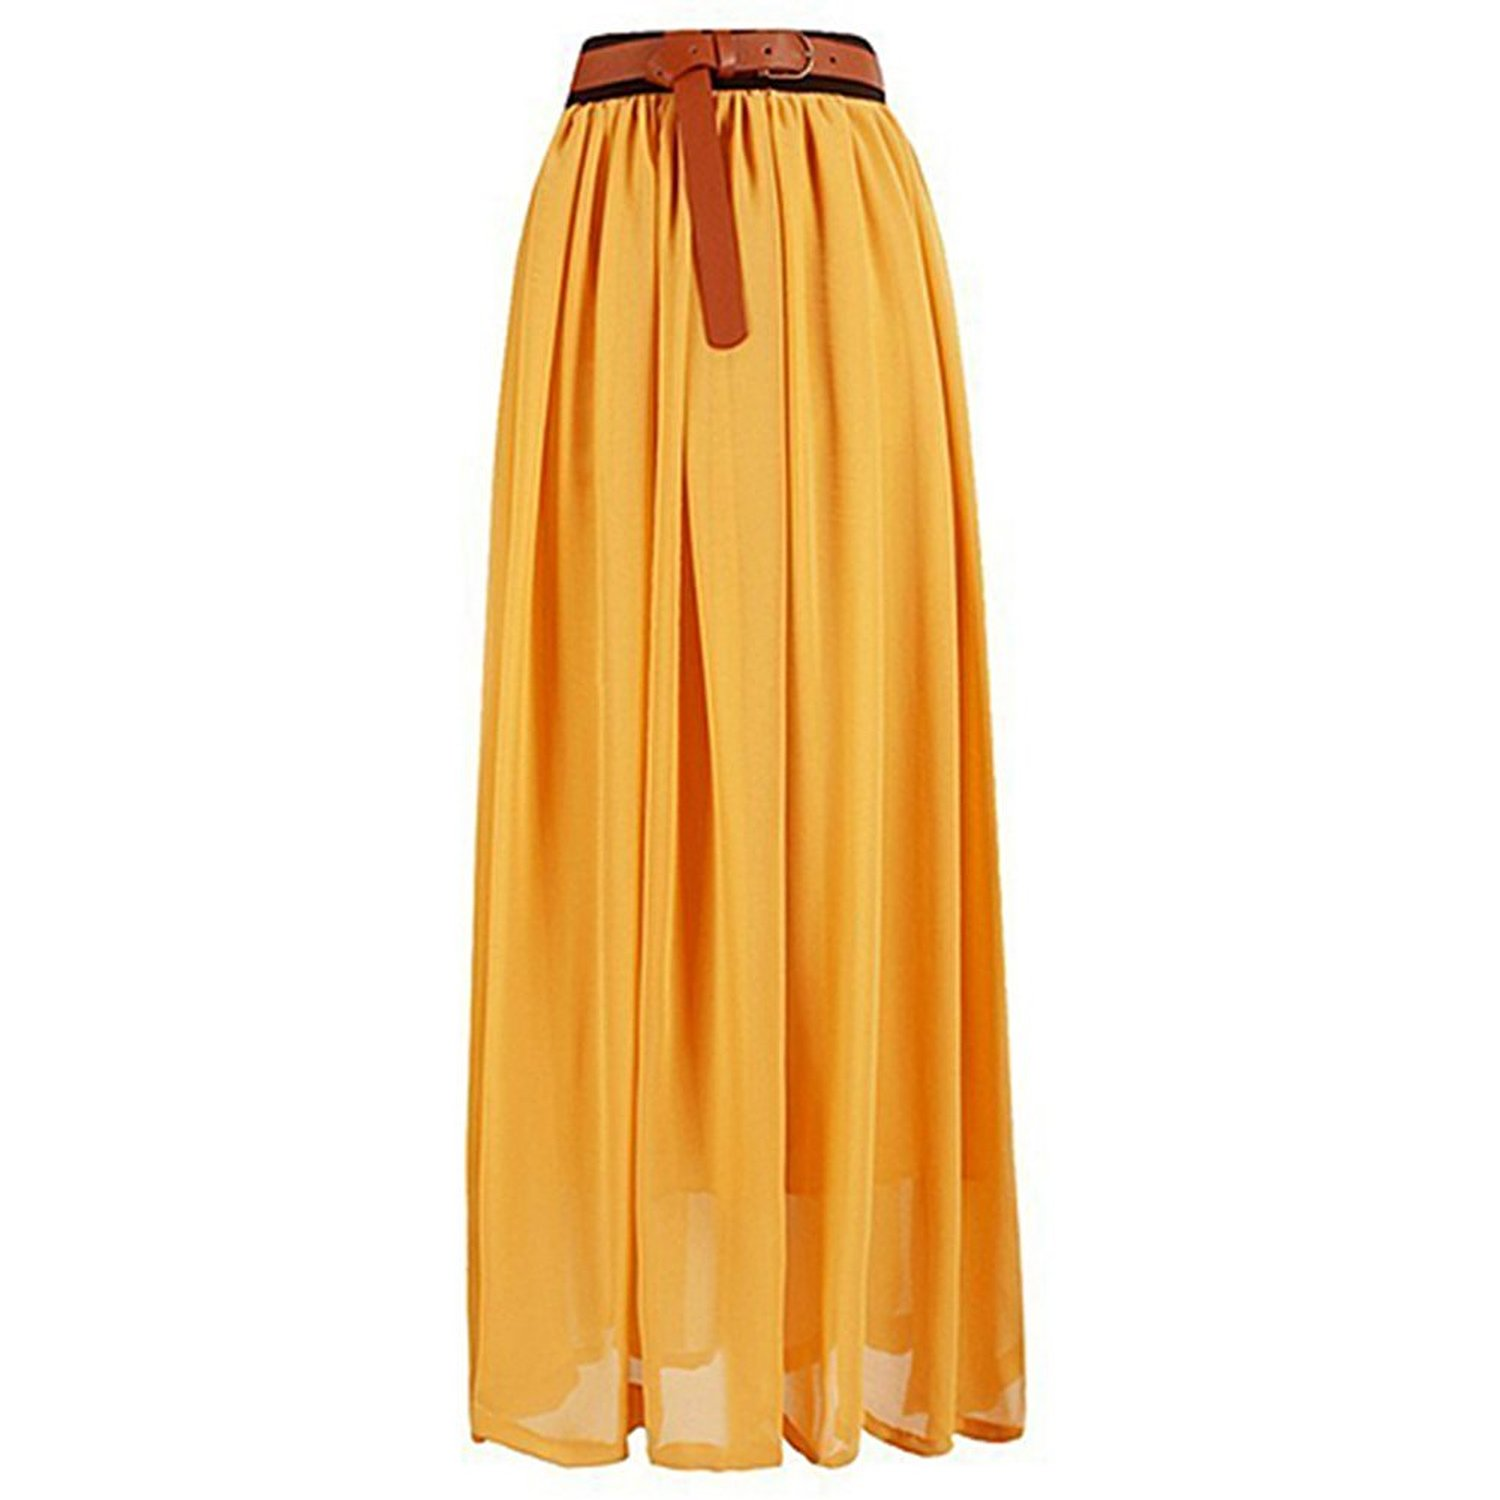 Broadfashion Women's Vintage Pleated Long Chiffon Maxi ...